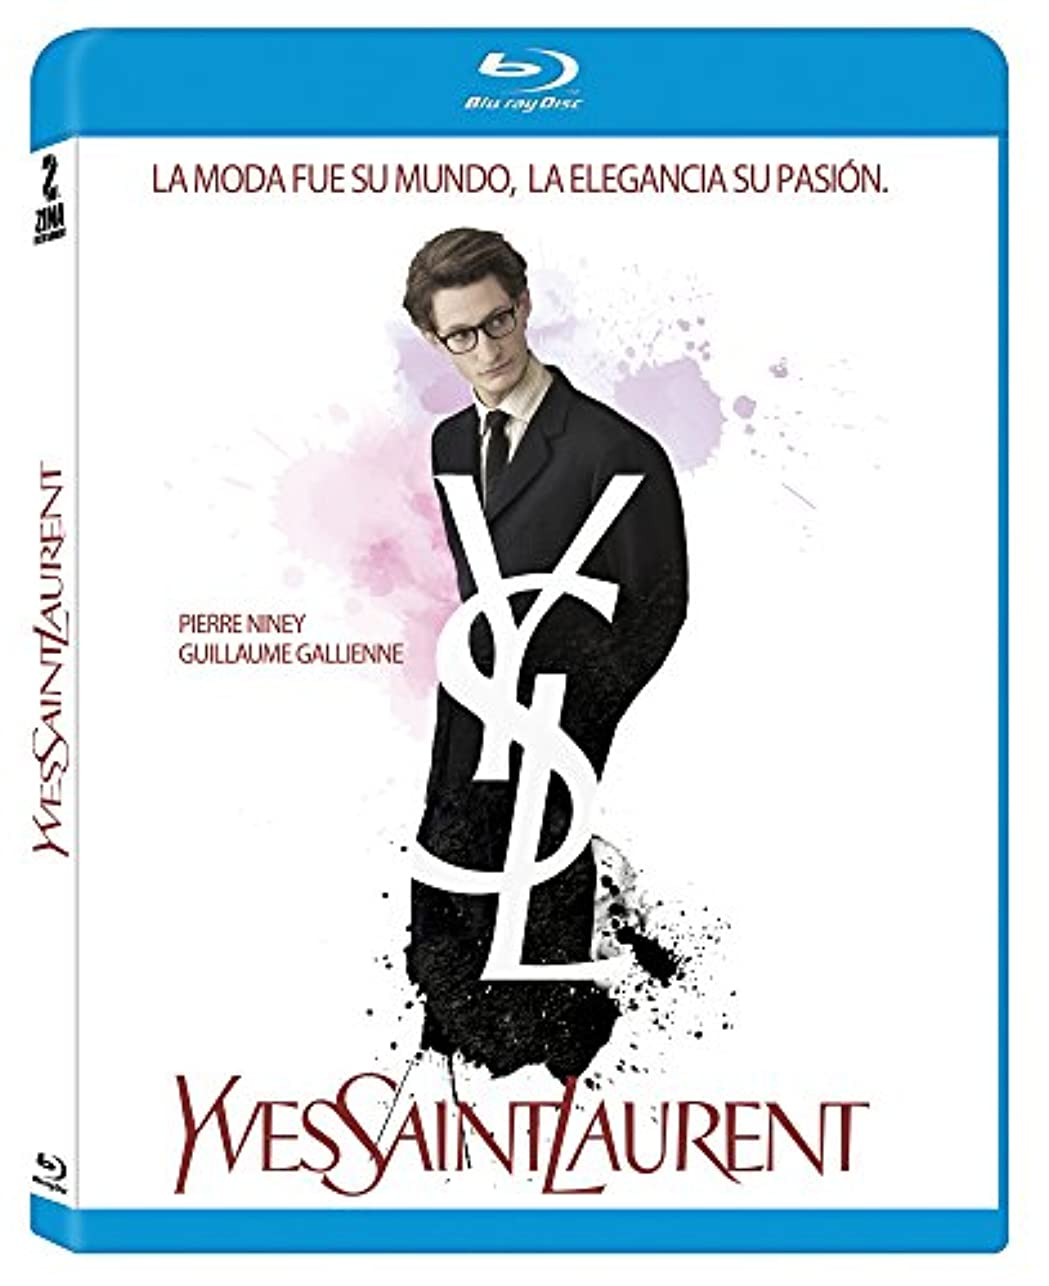 スプリット肥沃な入植者Yves Saint Laurent Movie Blu Ray (Multiregion) (French Audio with Spanish Subtitles / No English Options)